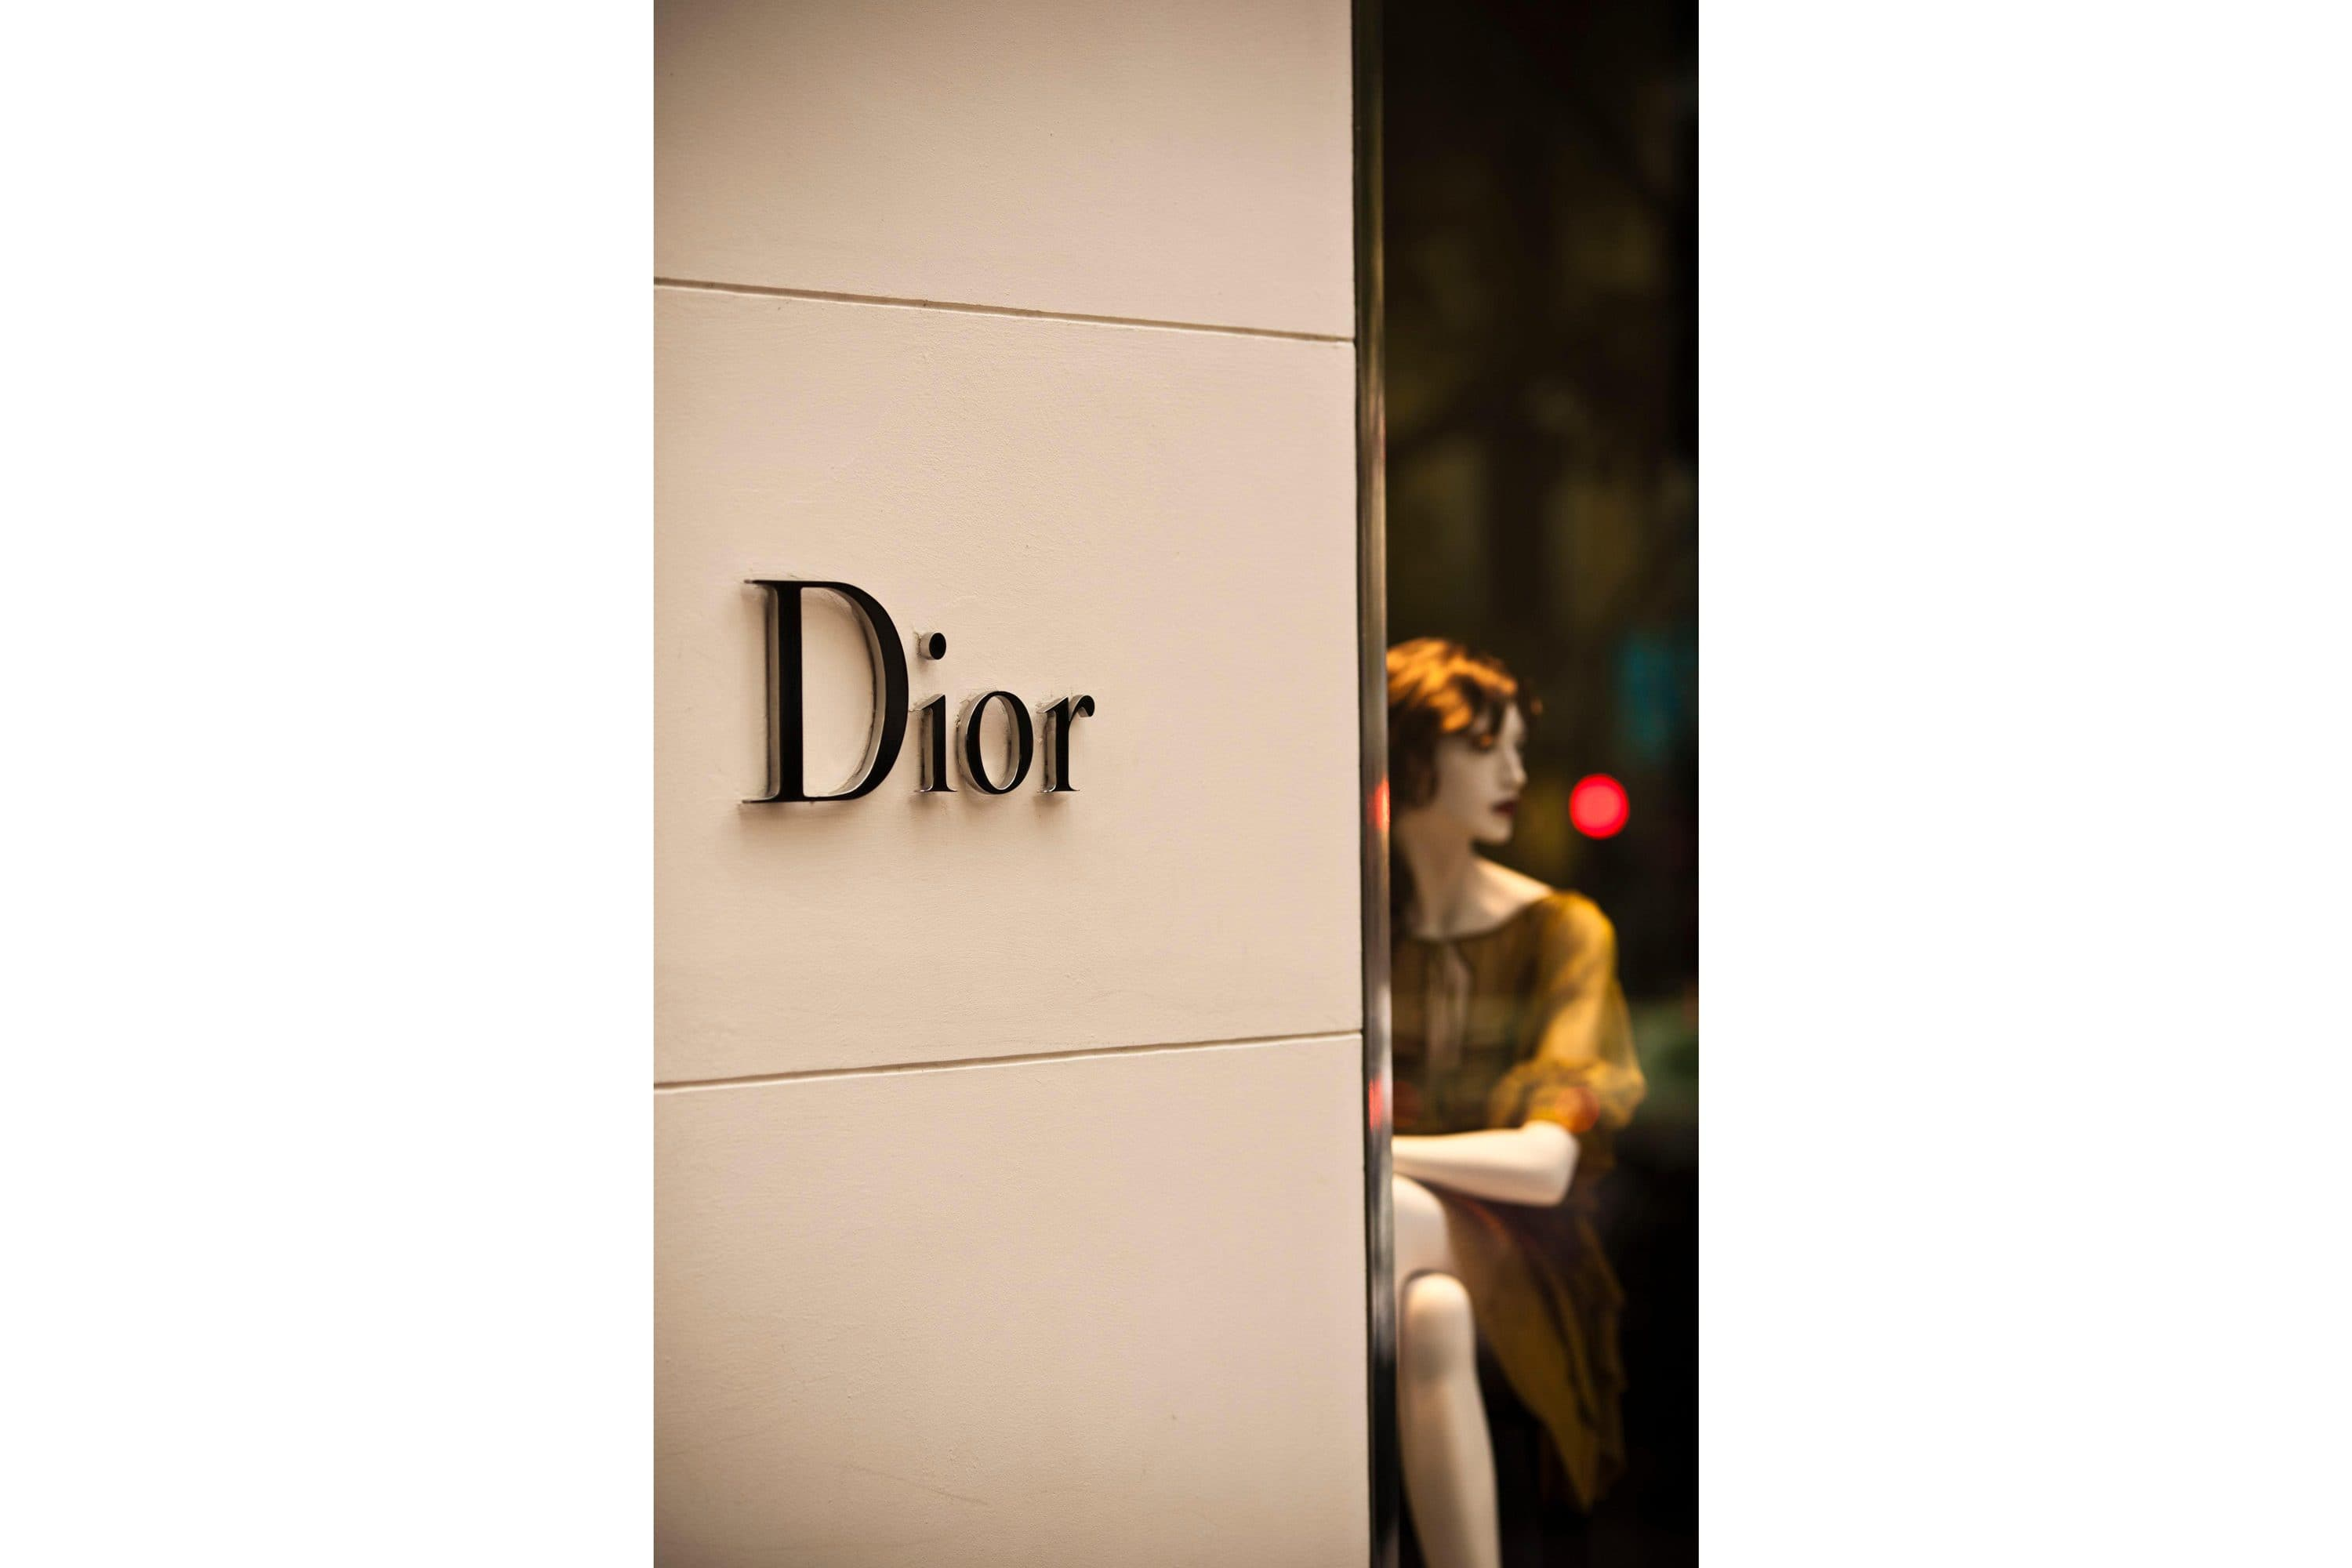 A mannequin in the window of the Dior shop in Madrid